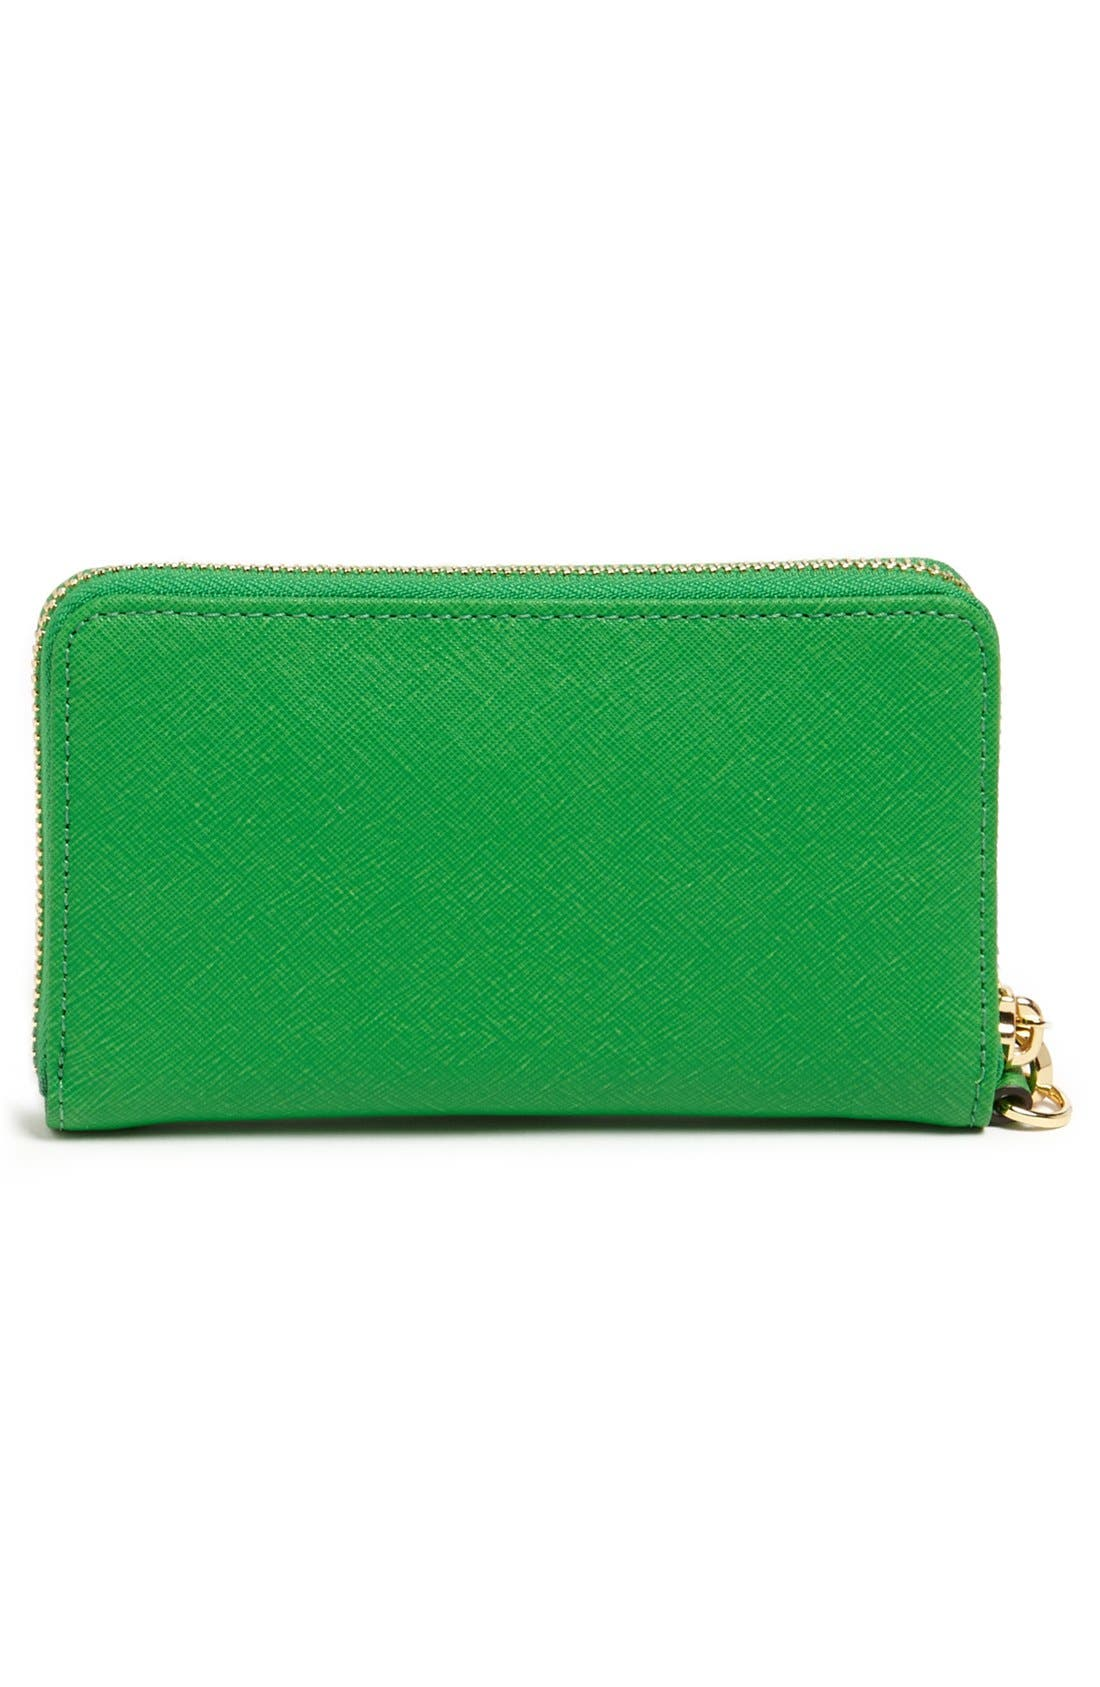 Alternate Image 3  - MICHAEL Michael Kors 'Saffiano' Phone Wallet